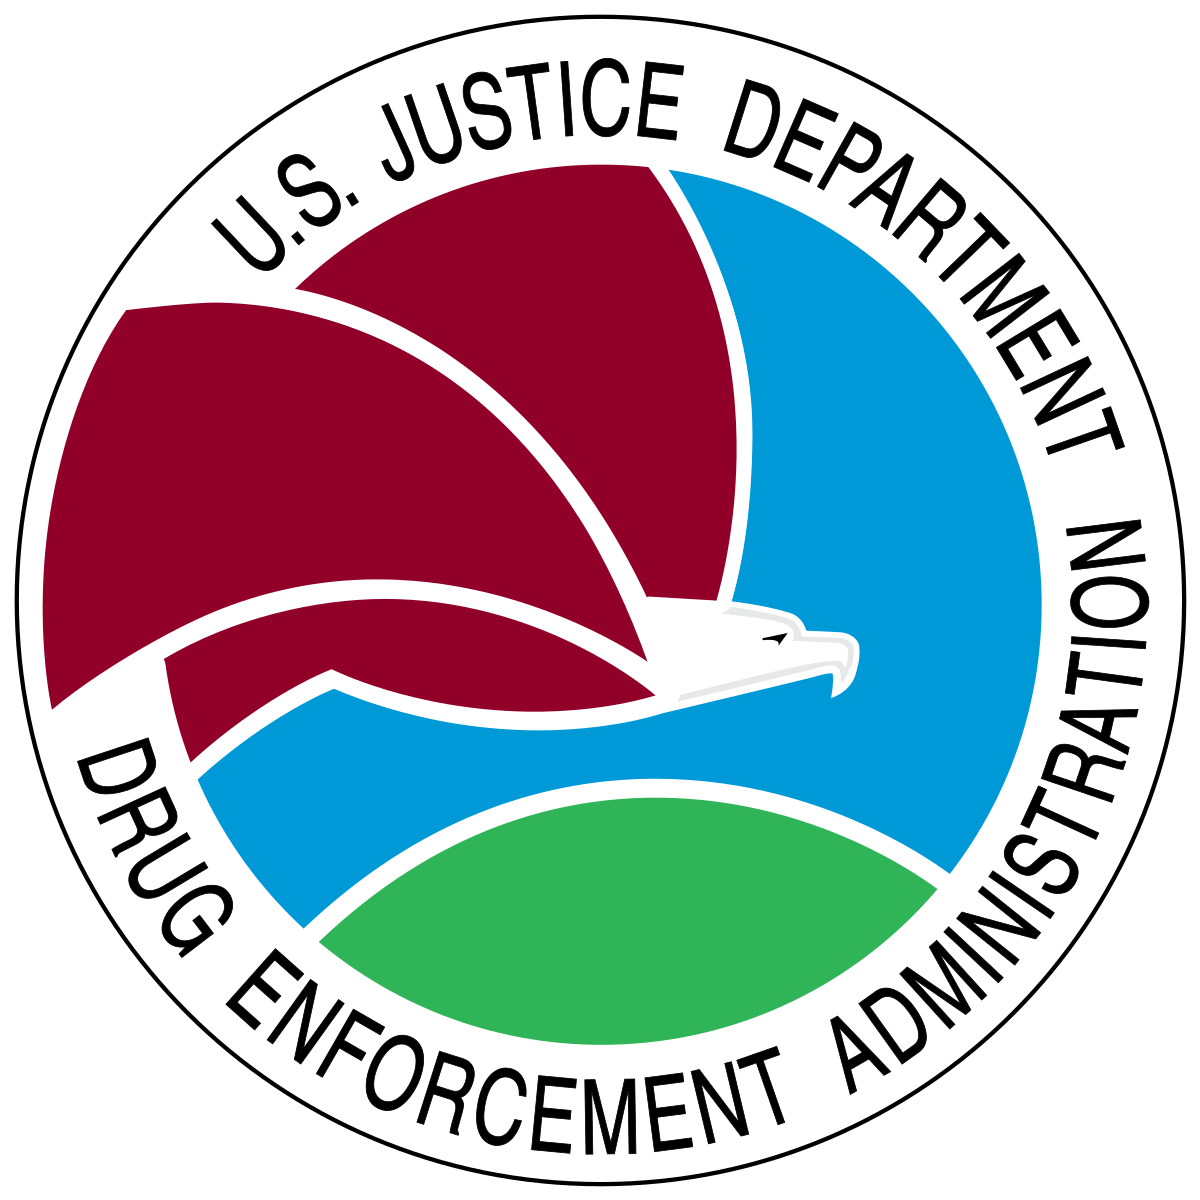 DEA RESPONDS TO FED COURT ORDER, ANNOUNCES STEPS TO IMPROVE CANNABIS RESEARCH ACCESS